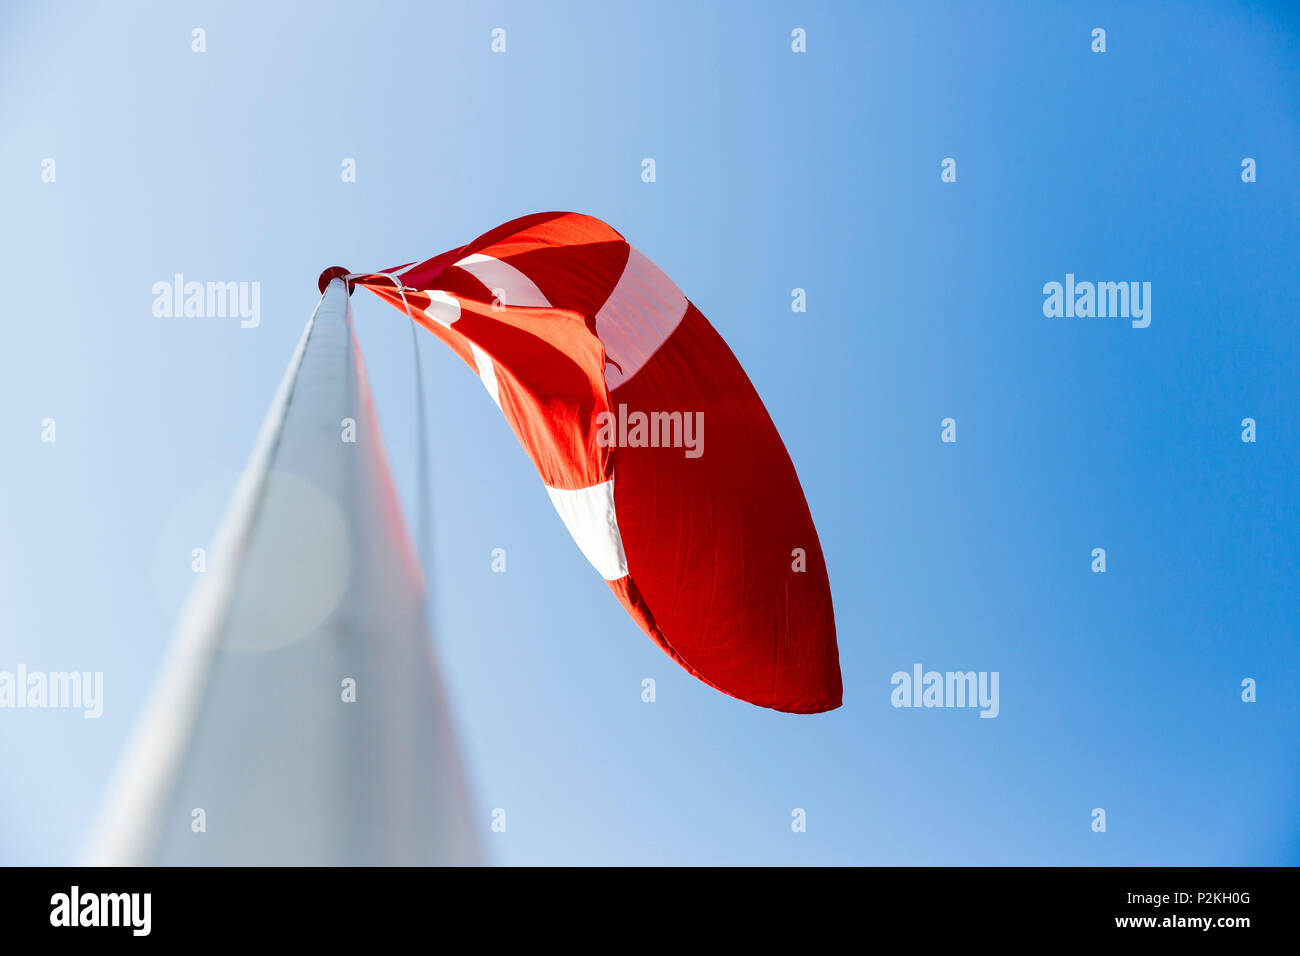 danish flag blowing in the wind, Baltic sea, Bornholm, near Gudhjem, Denmark, Europe Stock Photo